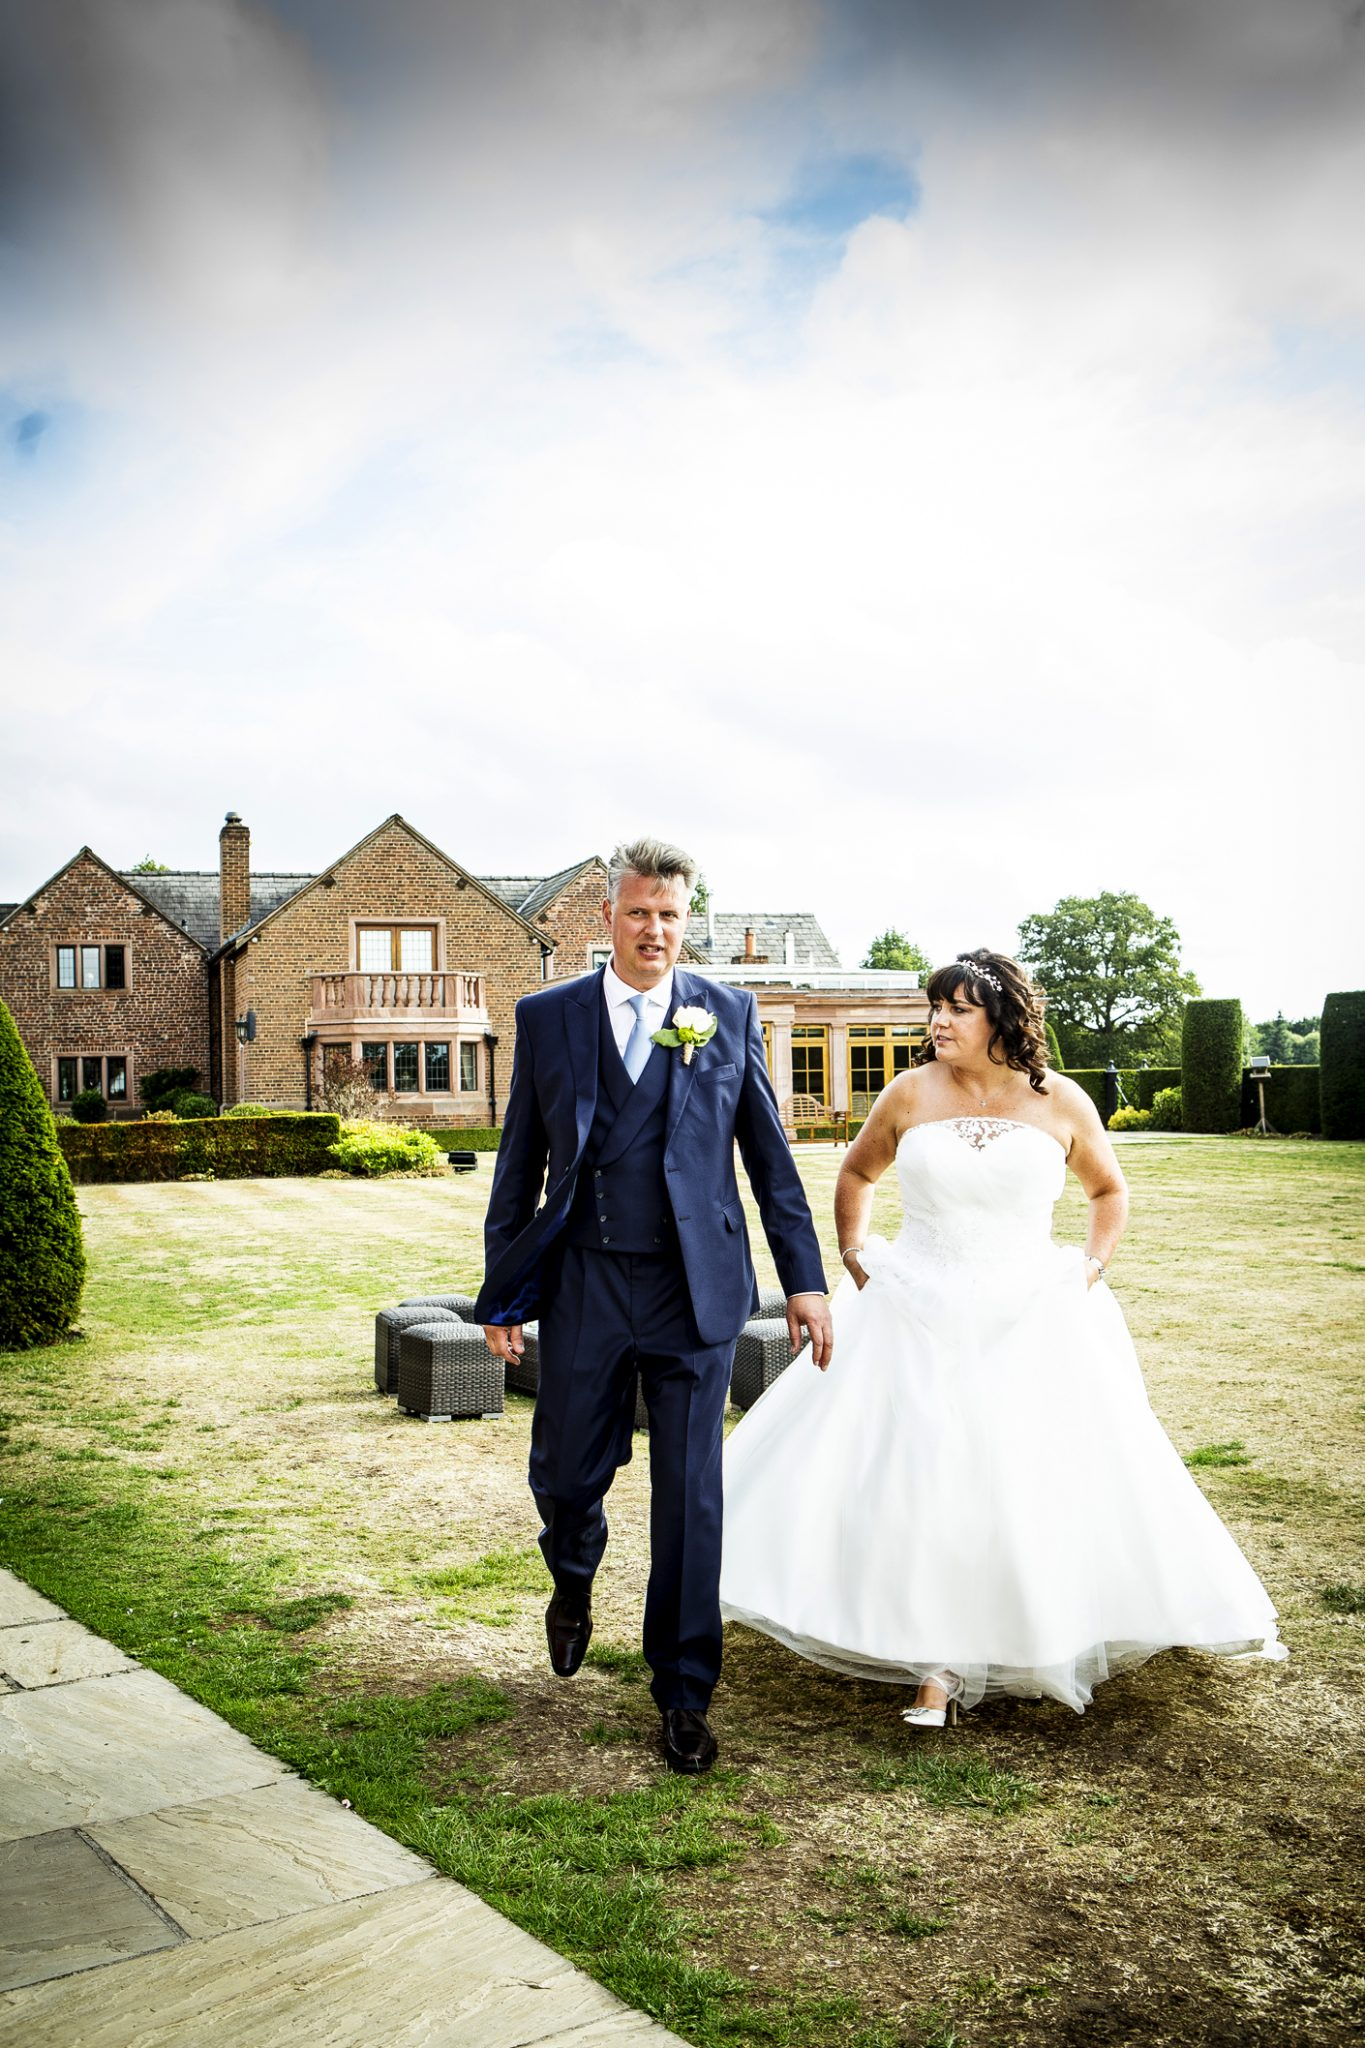 wedding-photography-of-the-bride-and-groom-before-the-wedding-breakfast-in-knutsford-cheshire